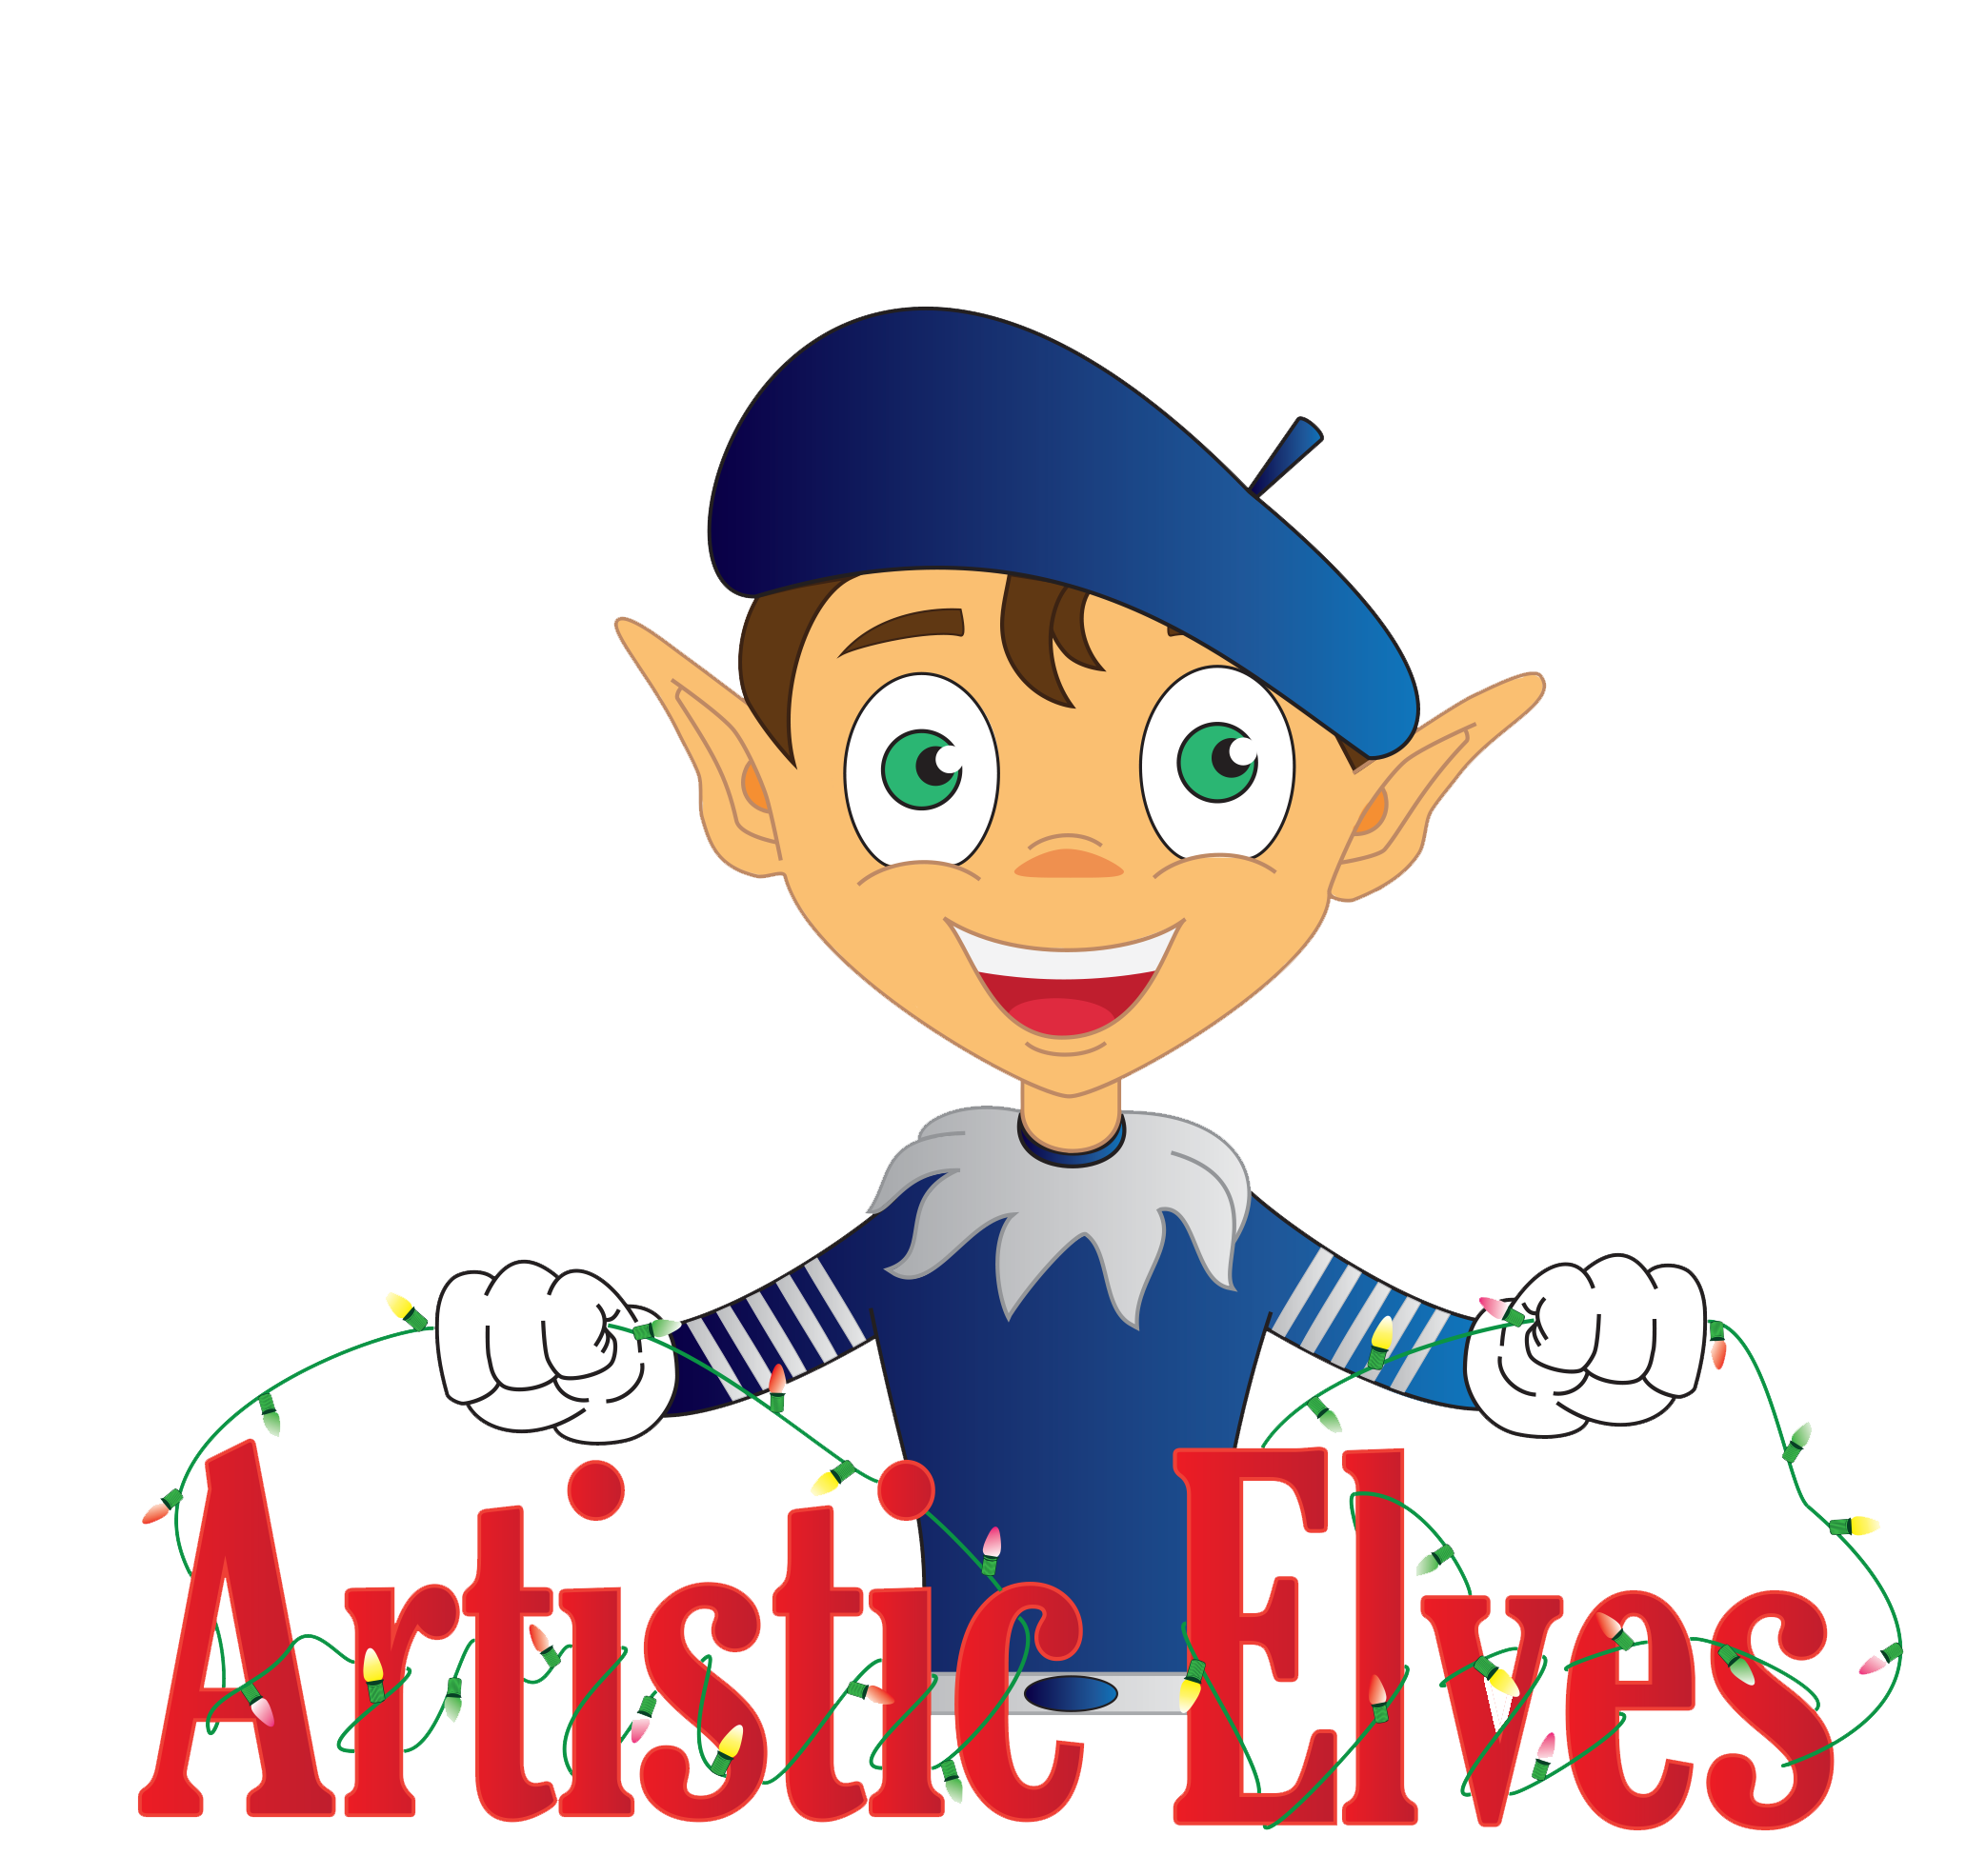 Artistic Elves